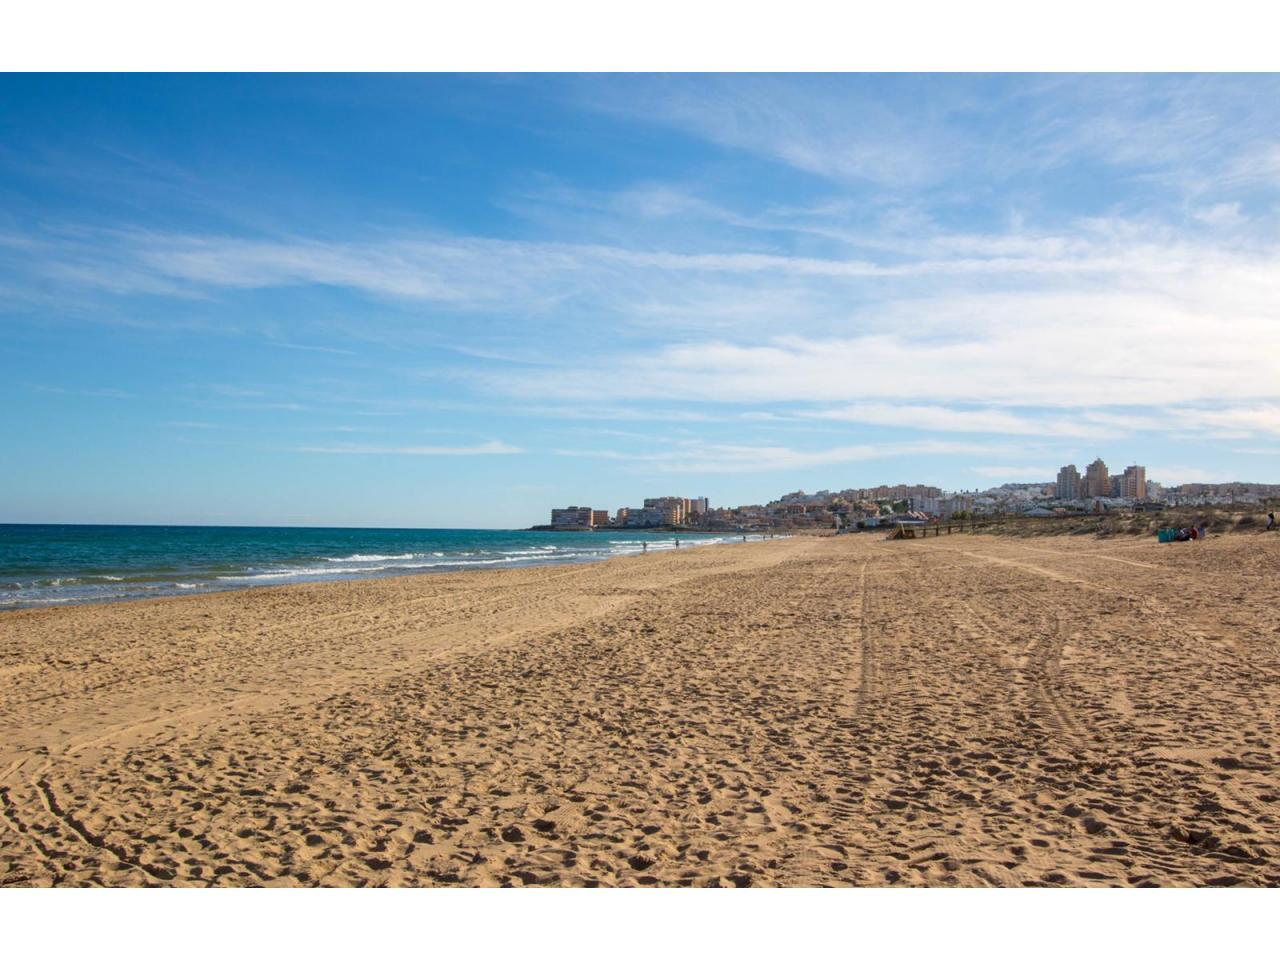 Apartment in Torrevieja, Spain for rent - 12